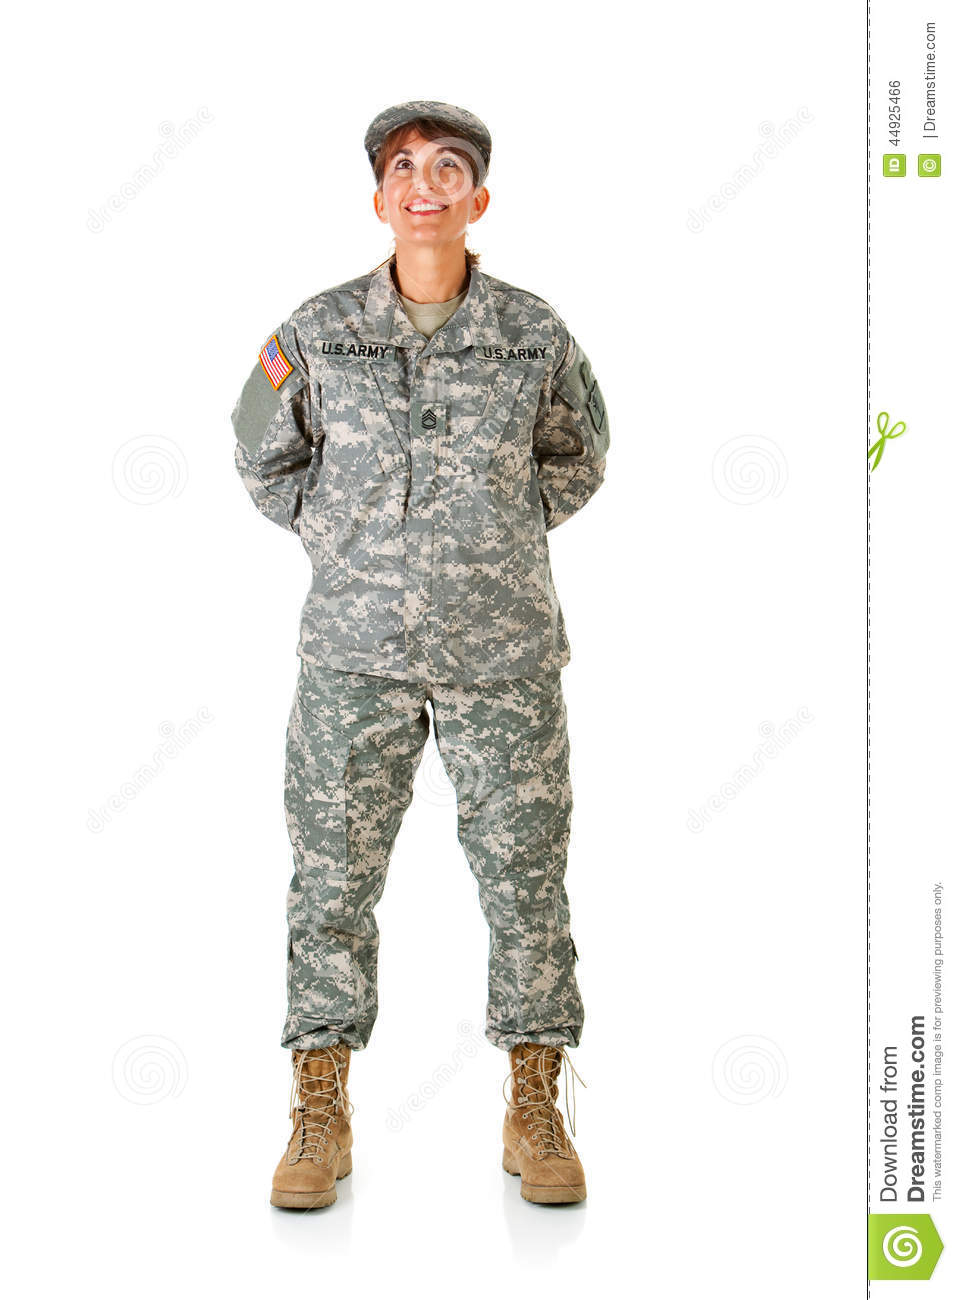 look up people in the army